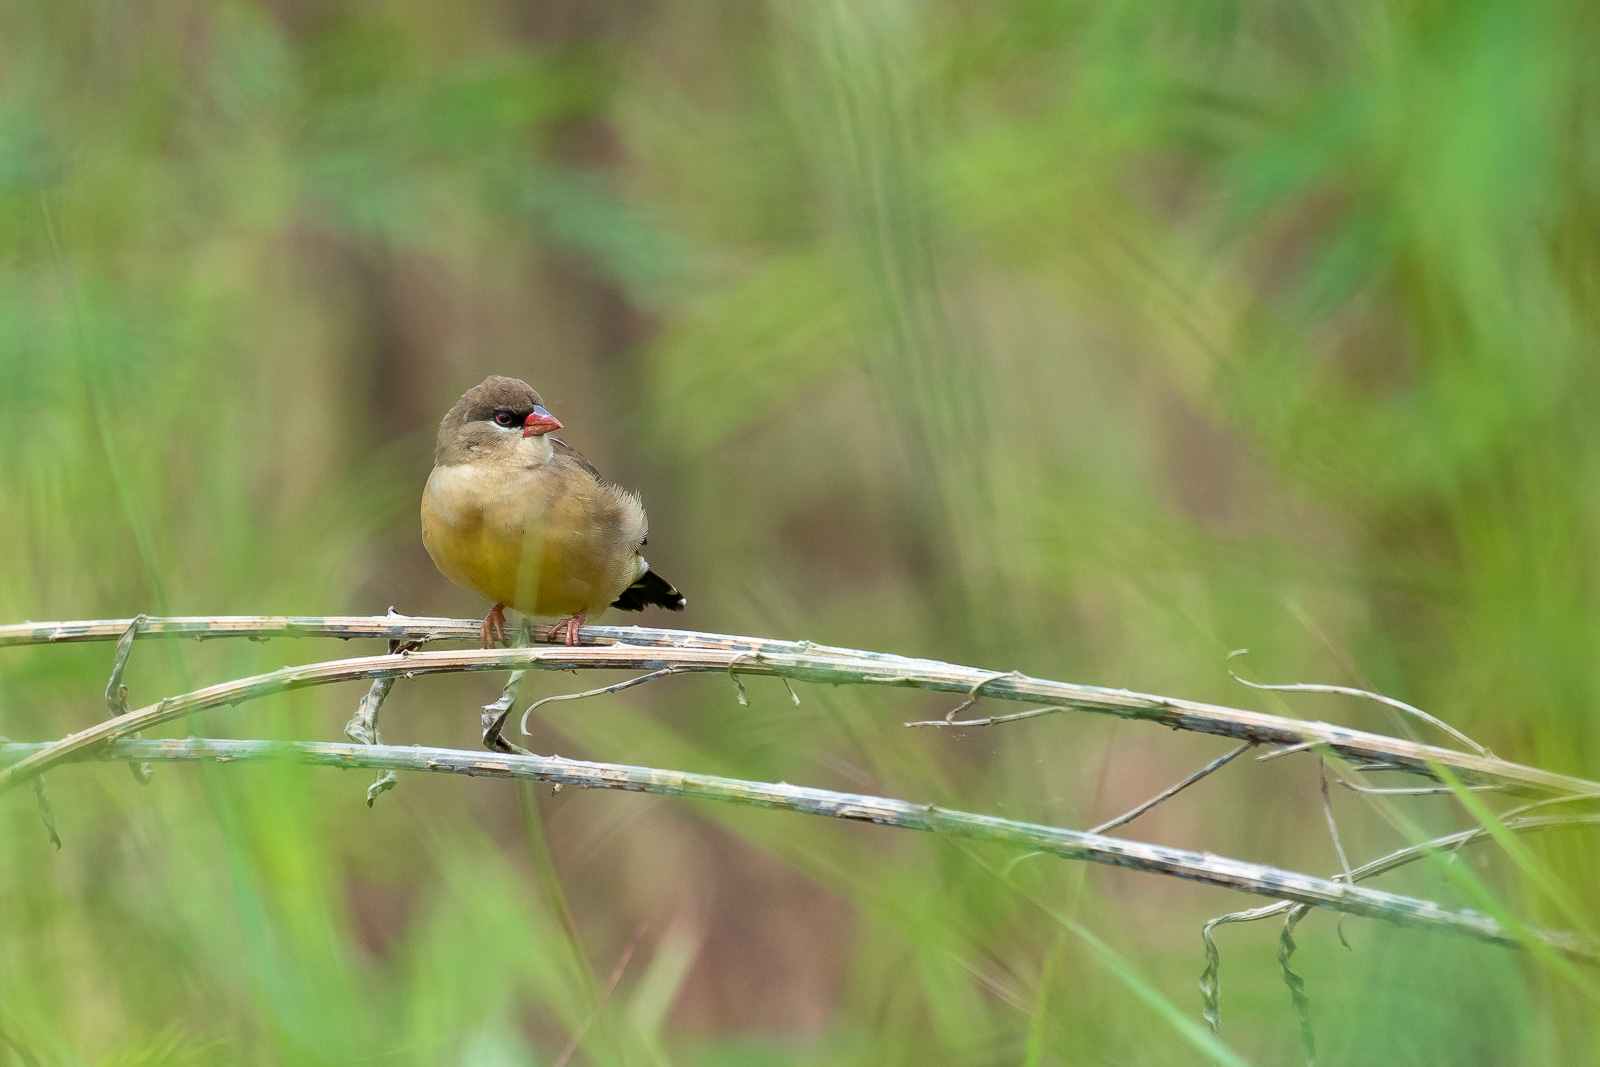 Image: This bird was behind the grass. There was significant clutter in front of it and the lens foc...